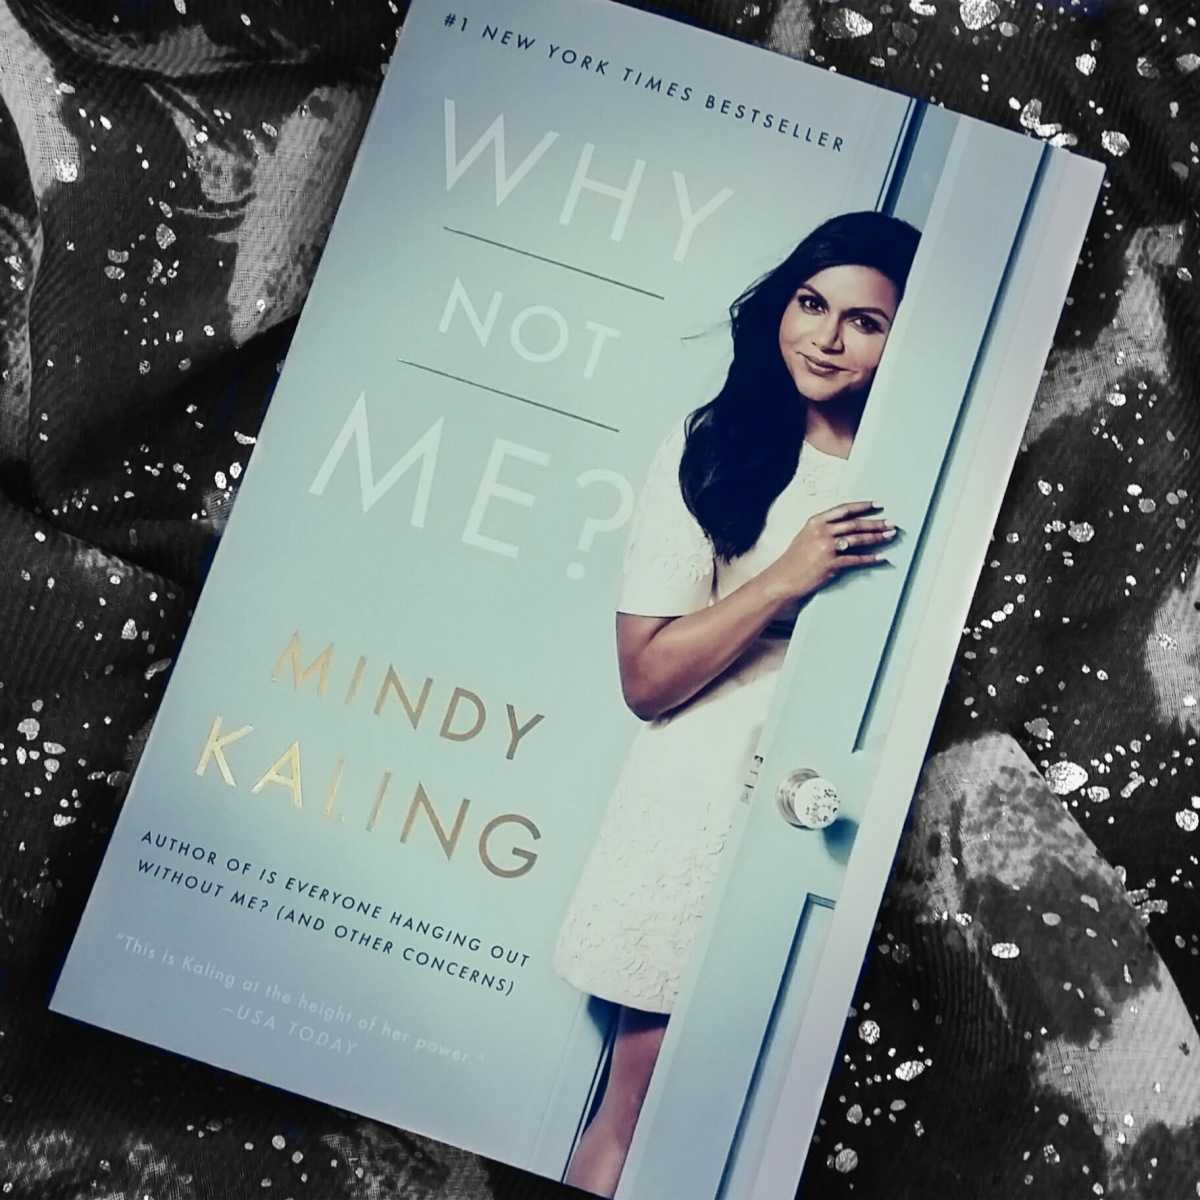 Why Not Me? by Mindy Kaling – Celebration of Books